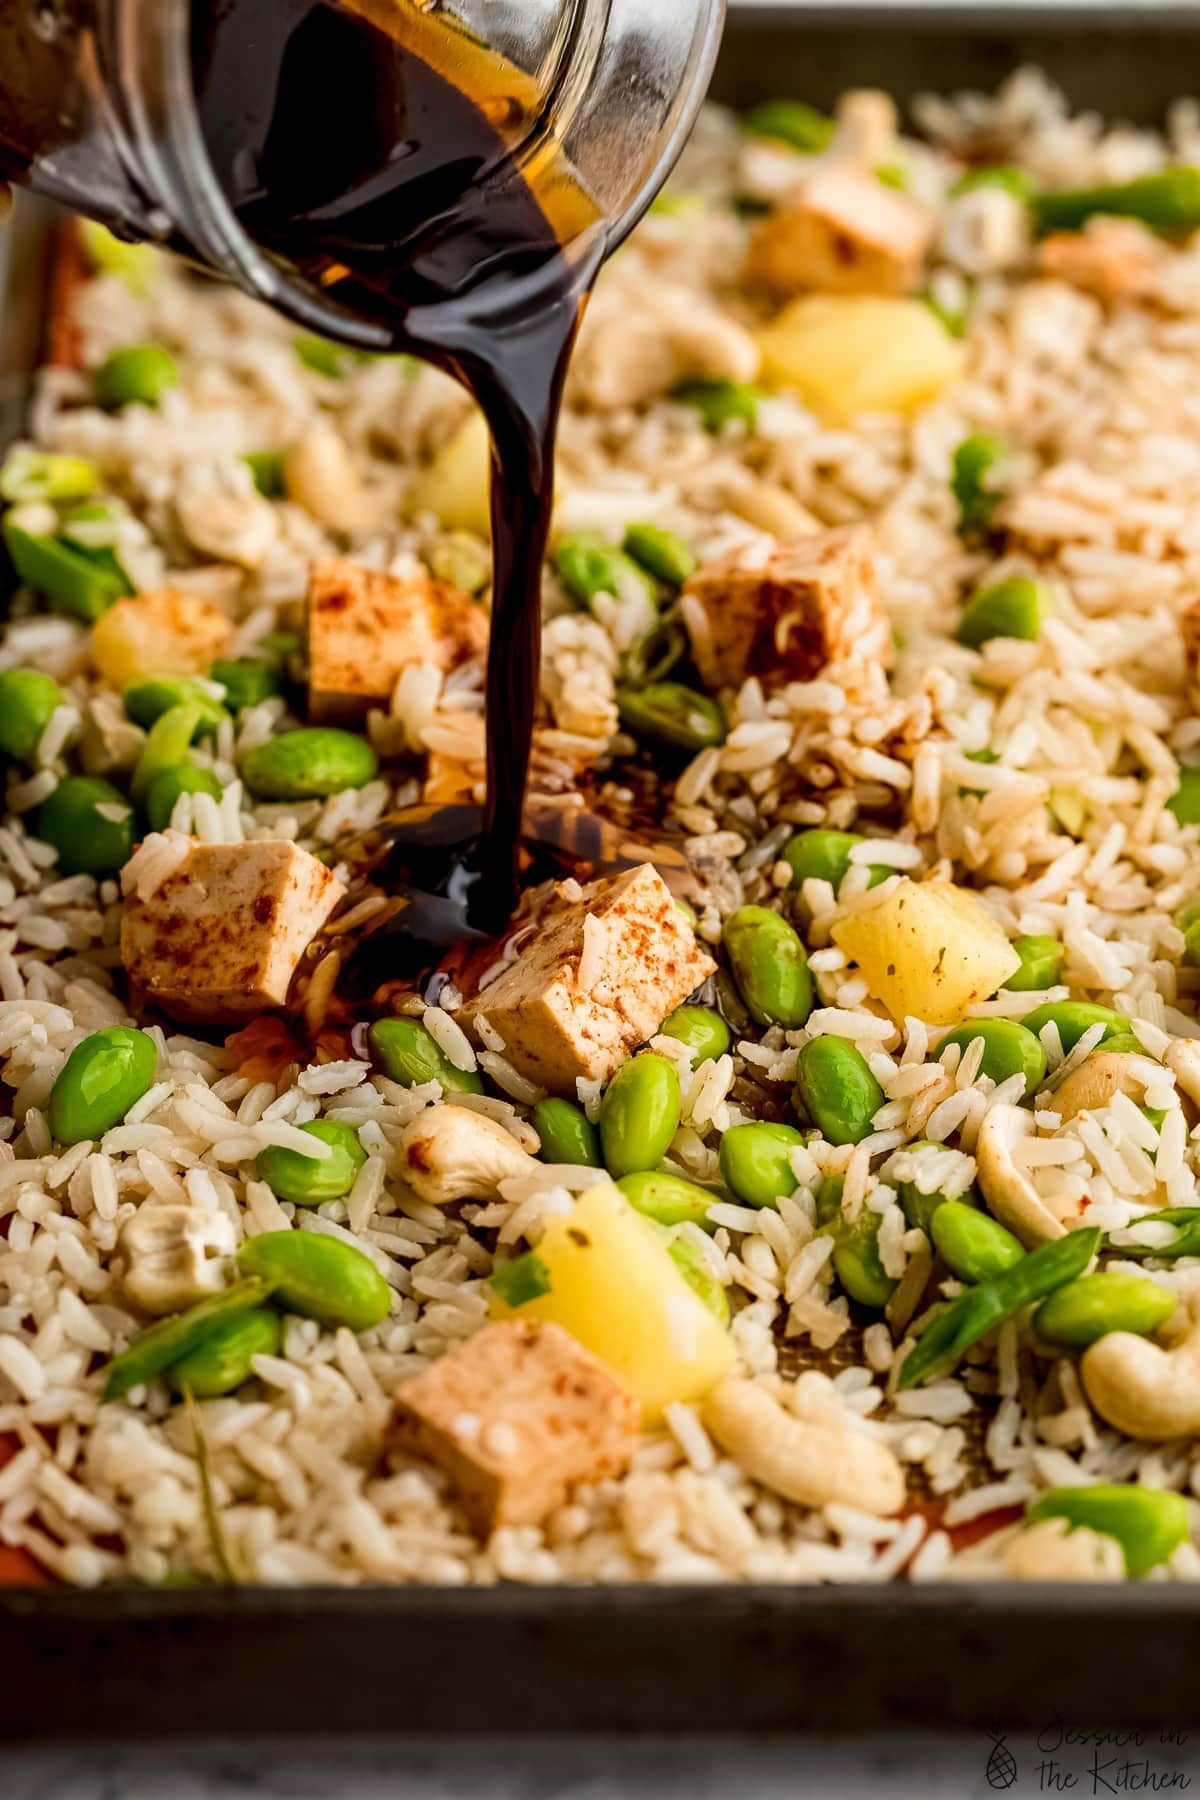 Pouring sauce on vegan fried rice.